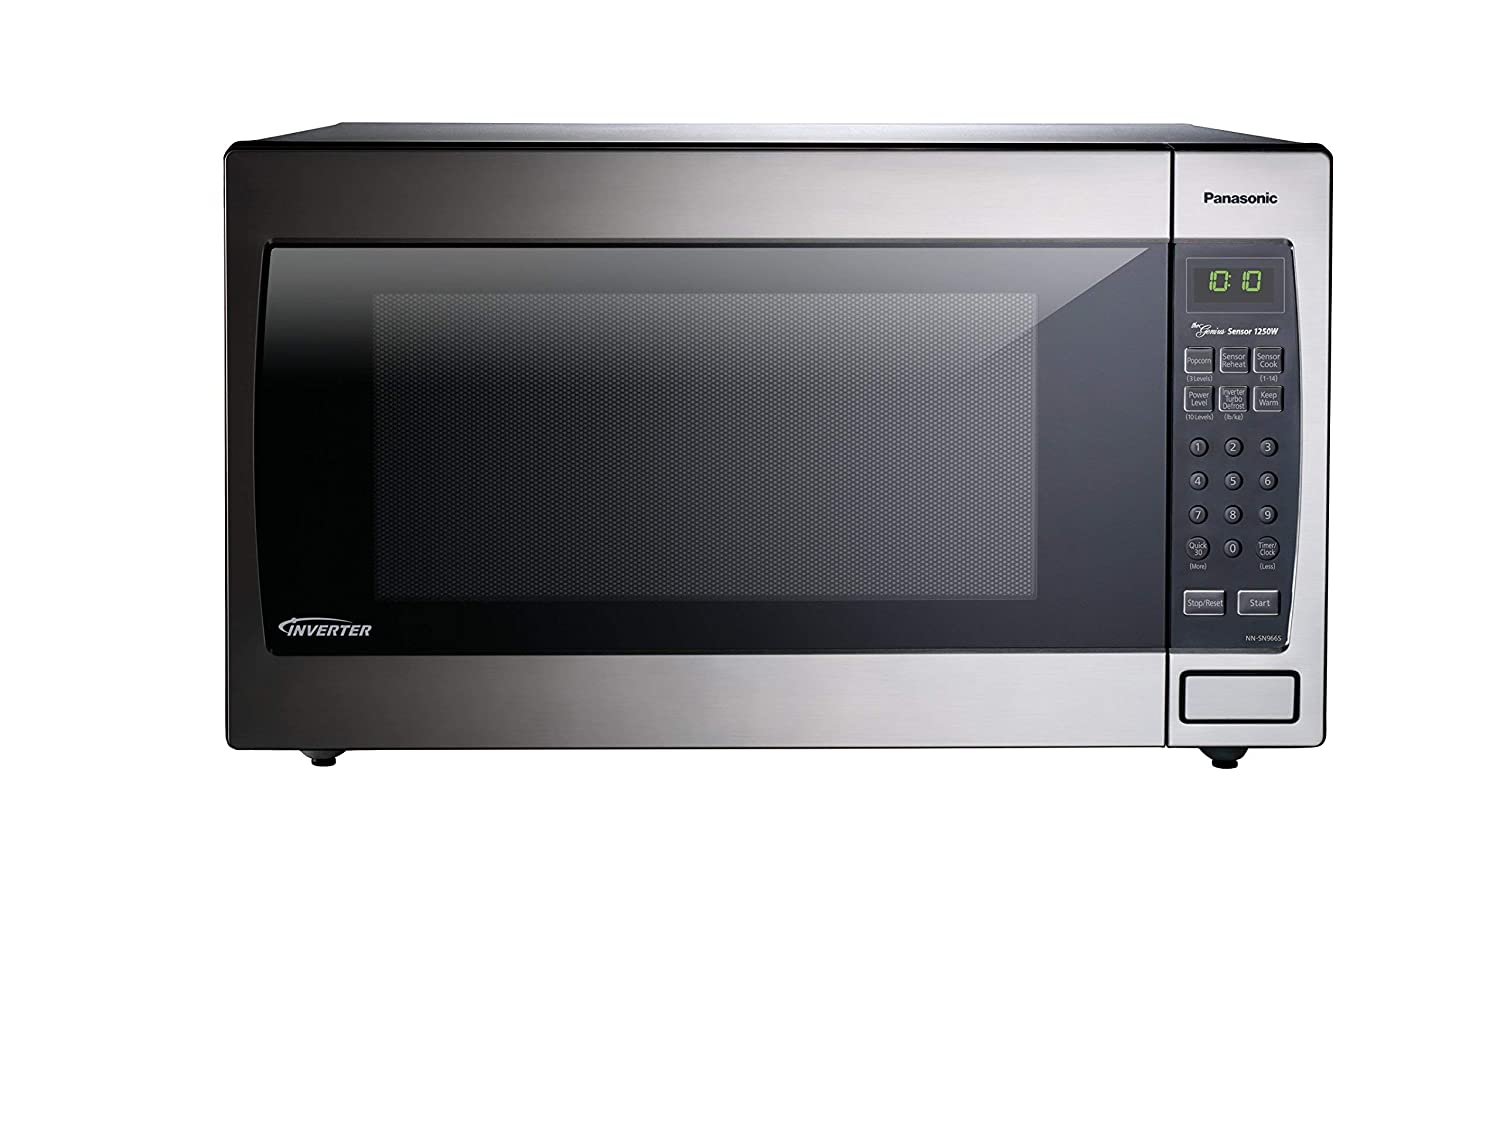 Panasonic Microwave Oven NN-SN966S Stainless Steel Countertop Built-In with Inverter Technology and Genius Sensor, 2.2 Cu. Ft, 1250W Renewed